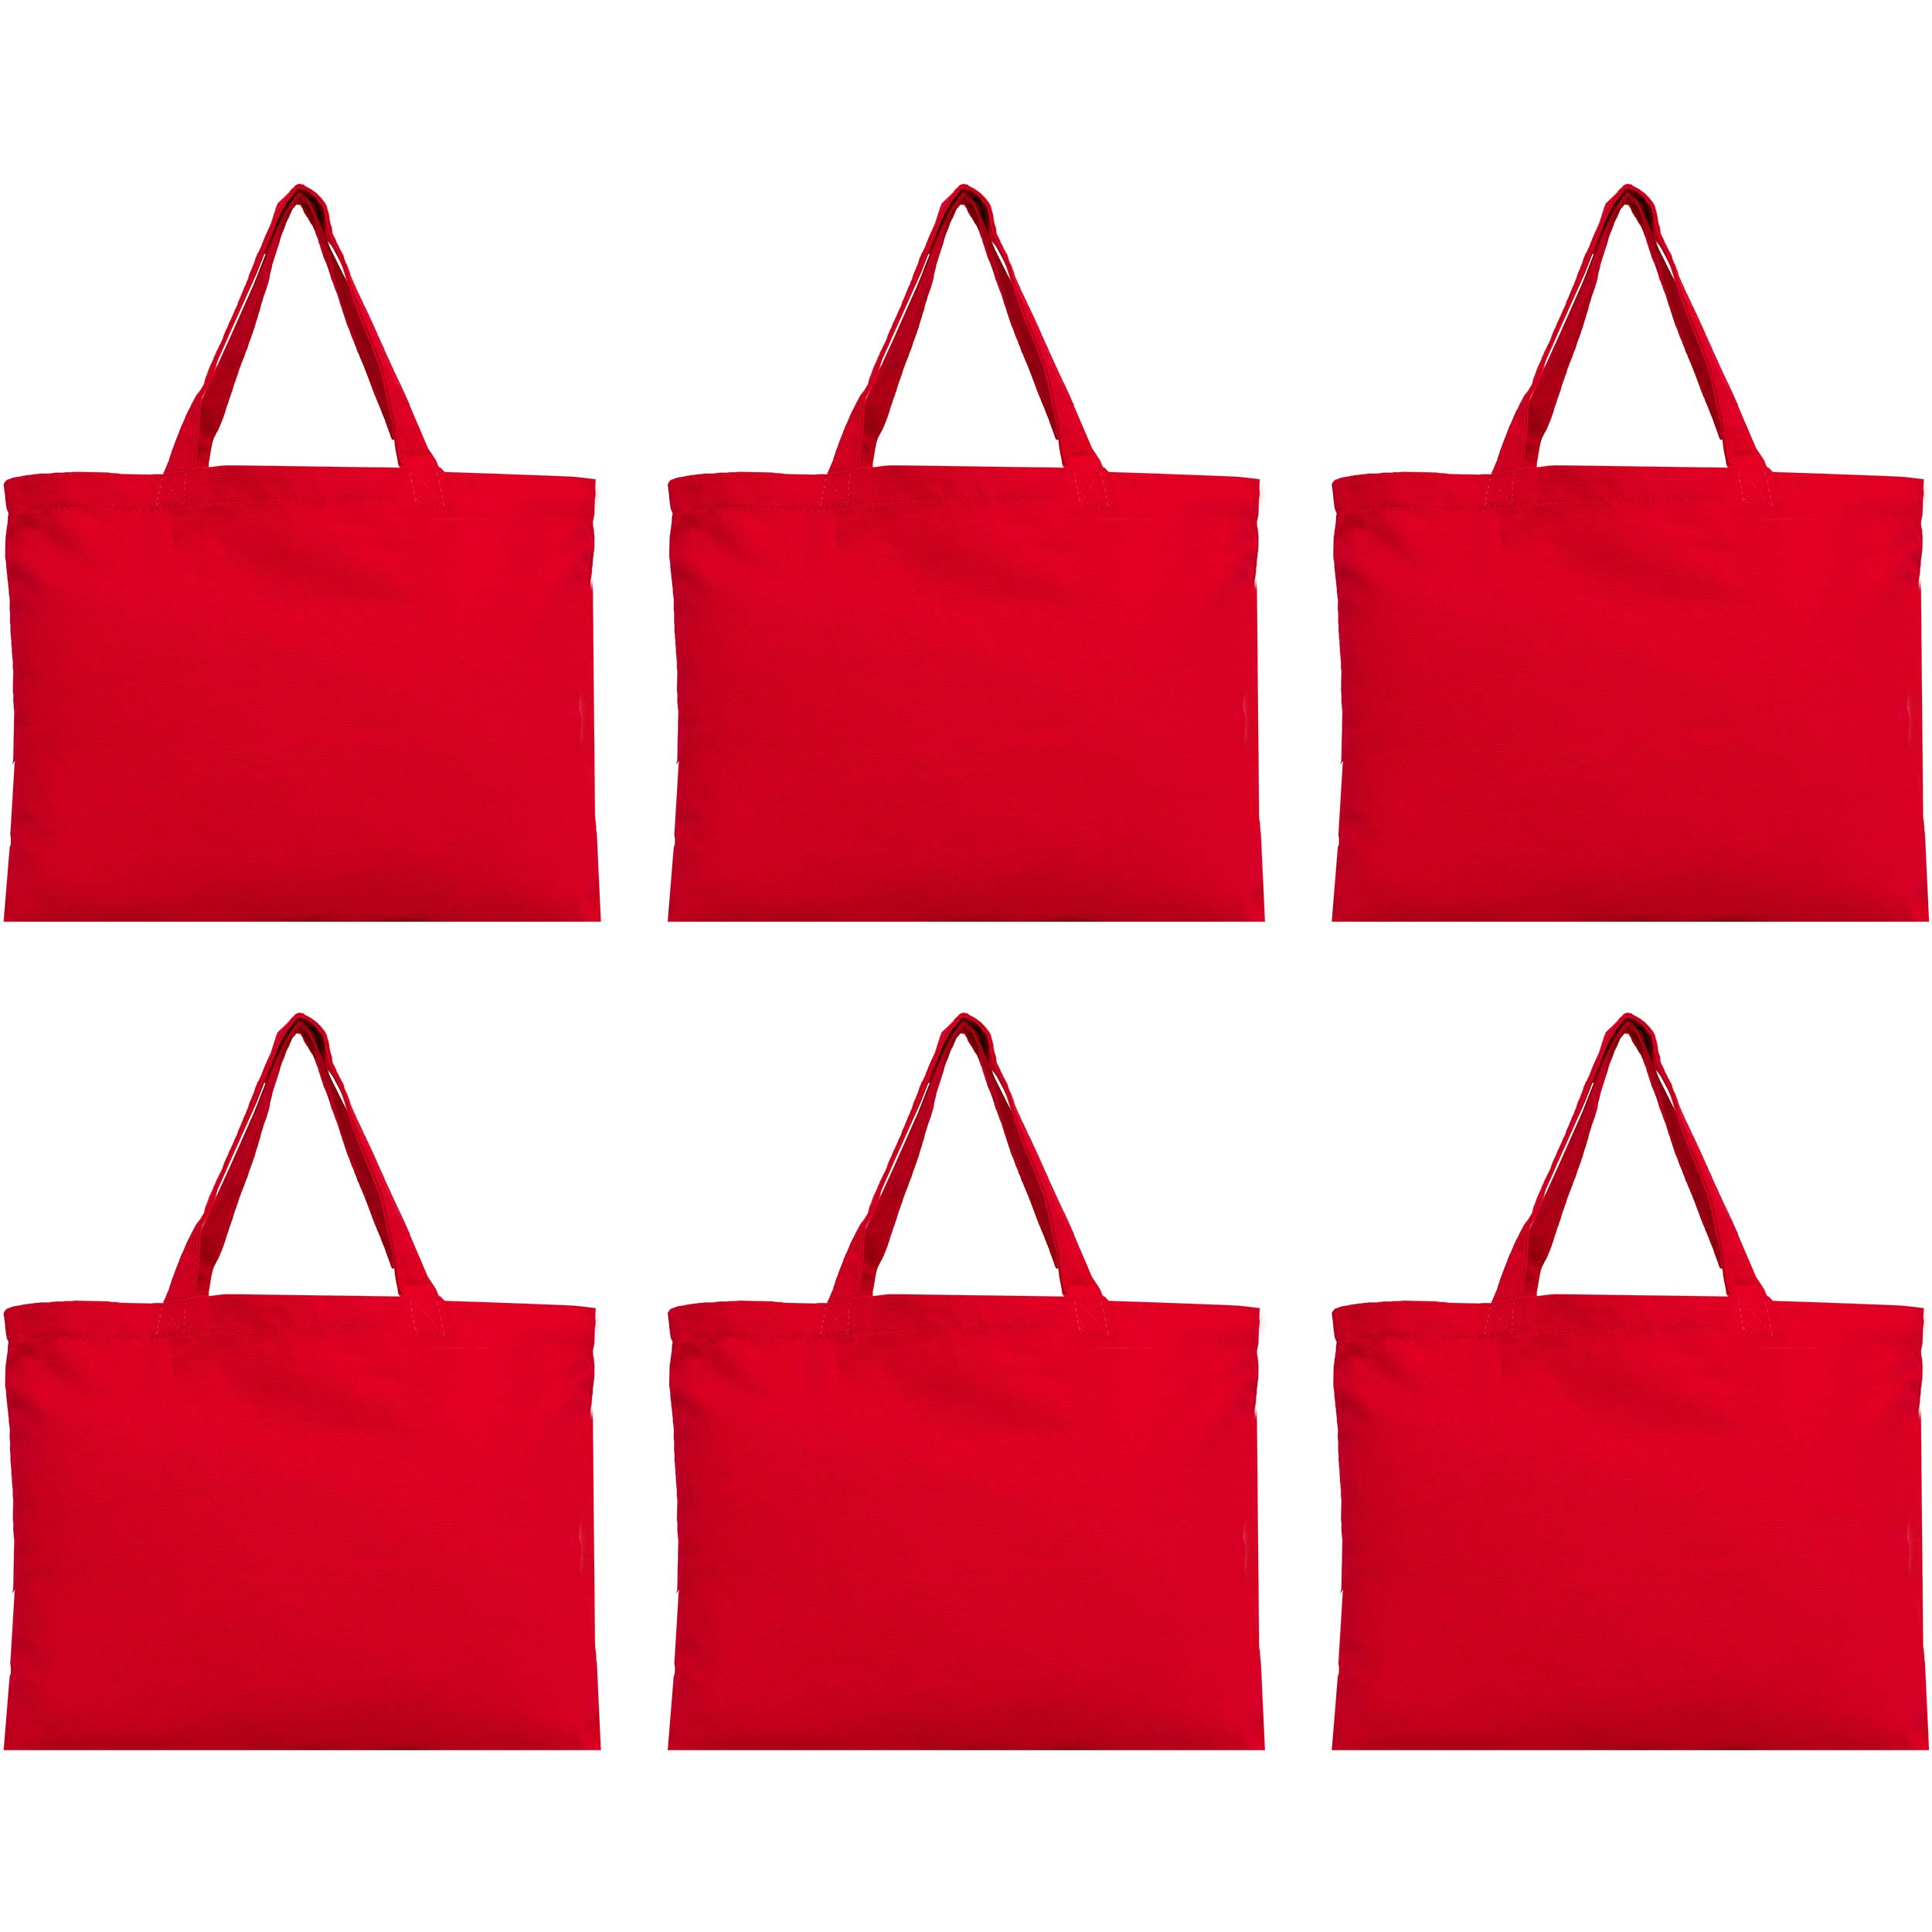 Reusable Heavy Duty 100% Cotton Canvas Bags by Threadart | Pack of 6 | For Crafts, Shopping, Groceries, Books, Welcome Bag, Beach Bag, and More | Eco Friendly | Generous Size 12x16 - Red